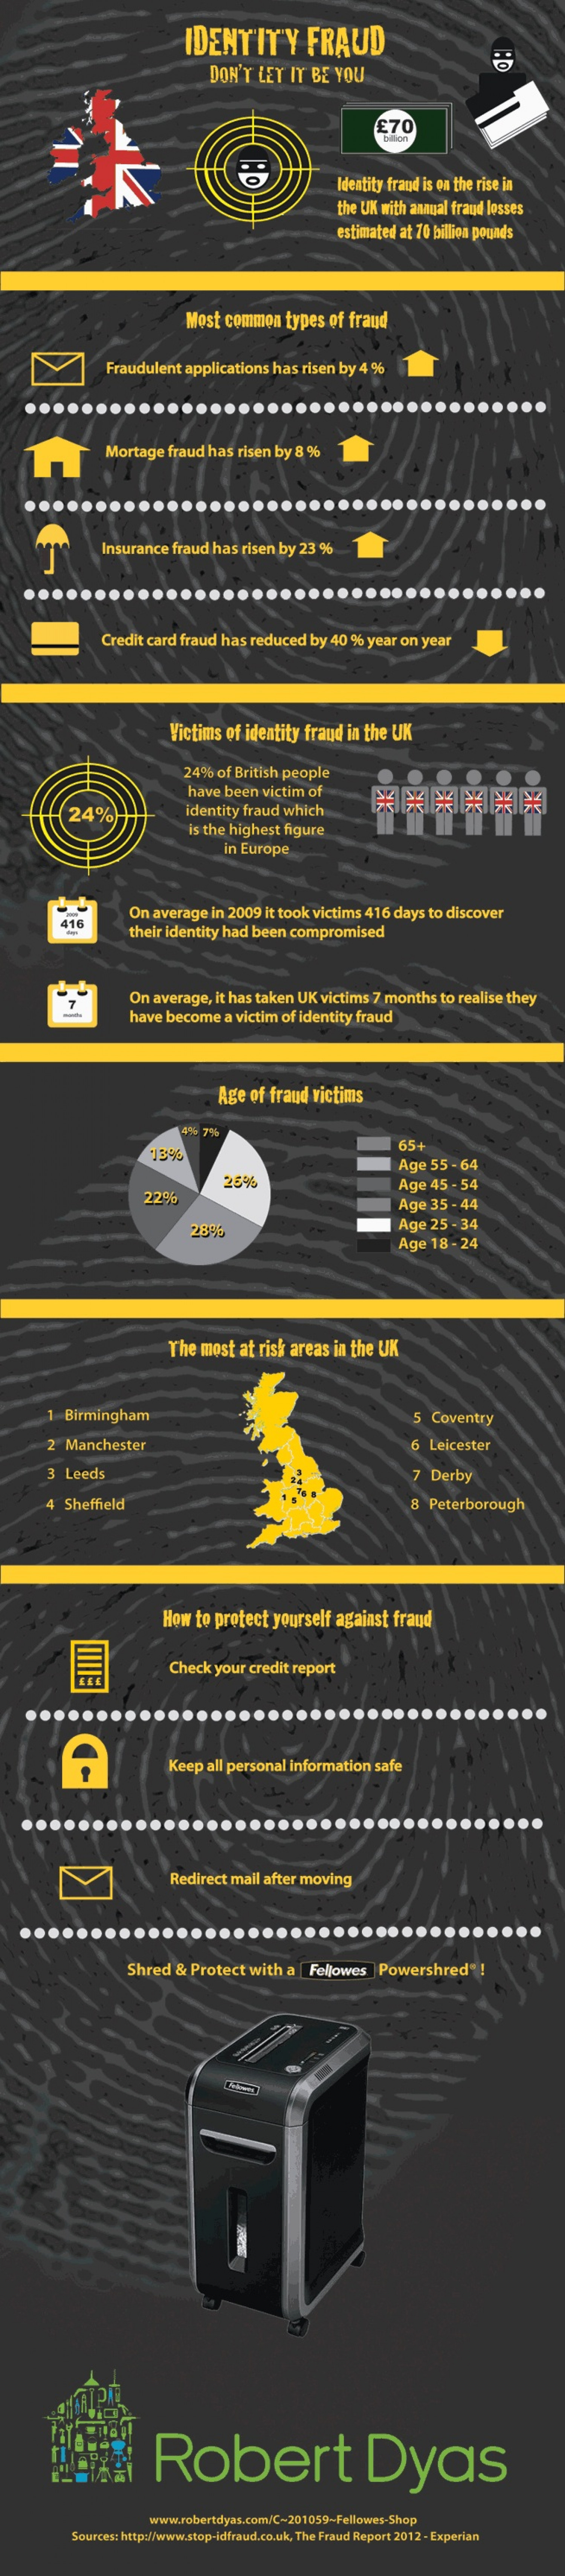 Identity Fraud - Don't Let It Be You Infographic